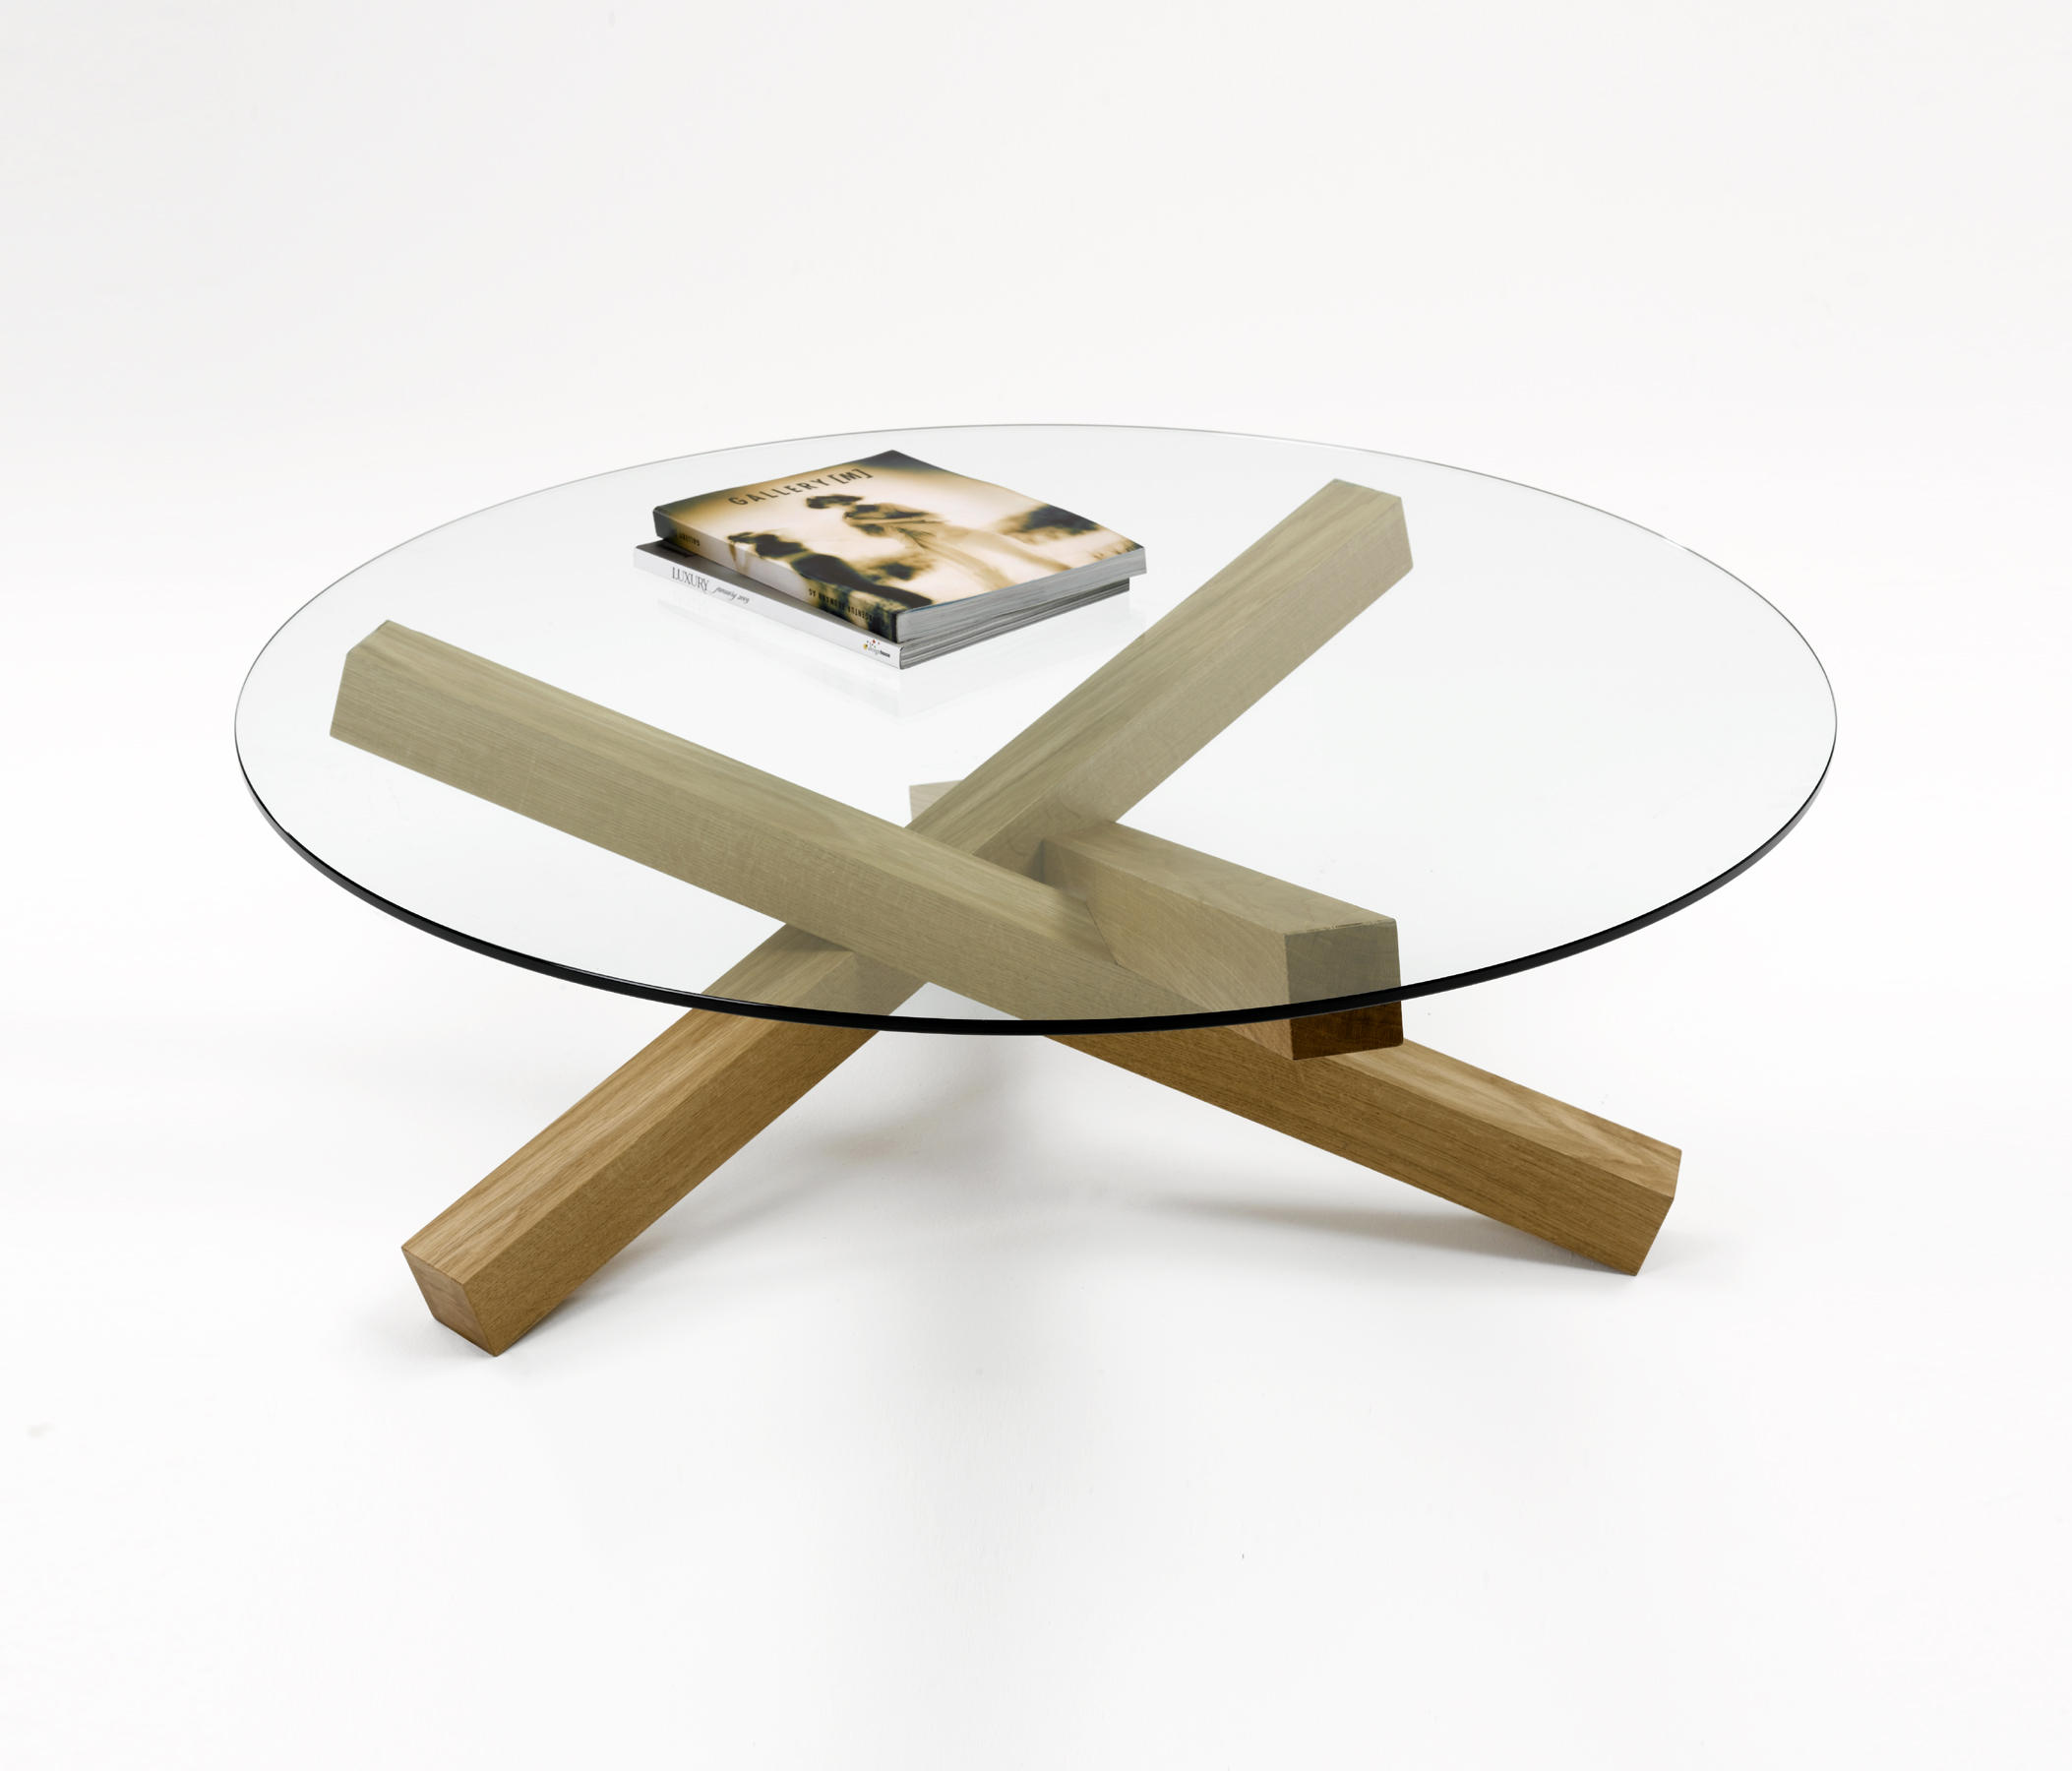 CAMPFIRE Coffee tables from Rthlisberger Kollektion Architonic